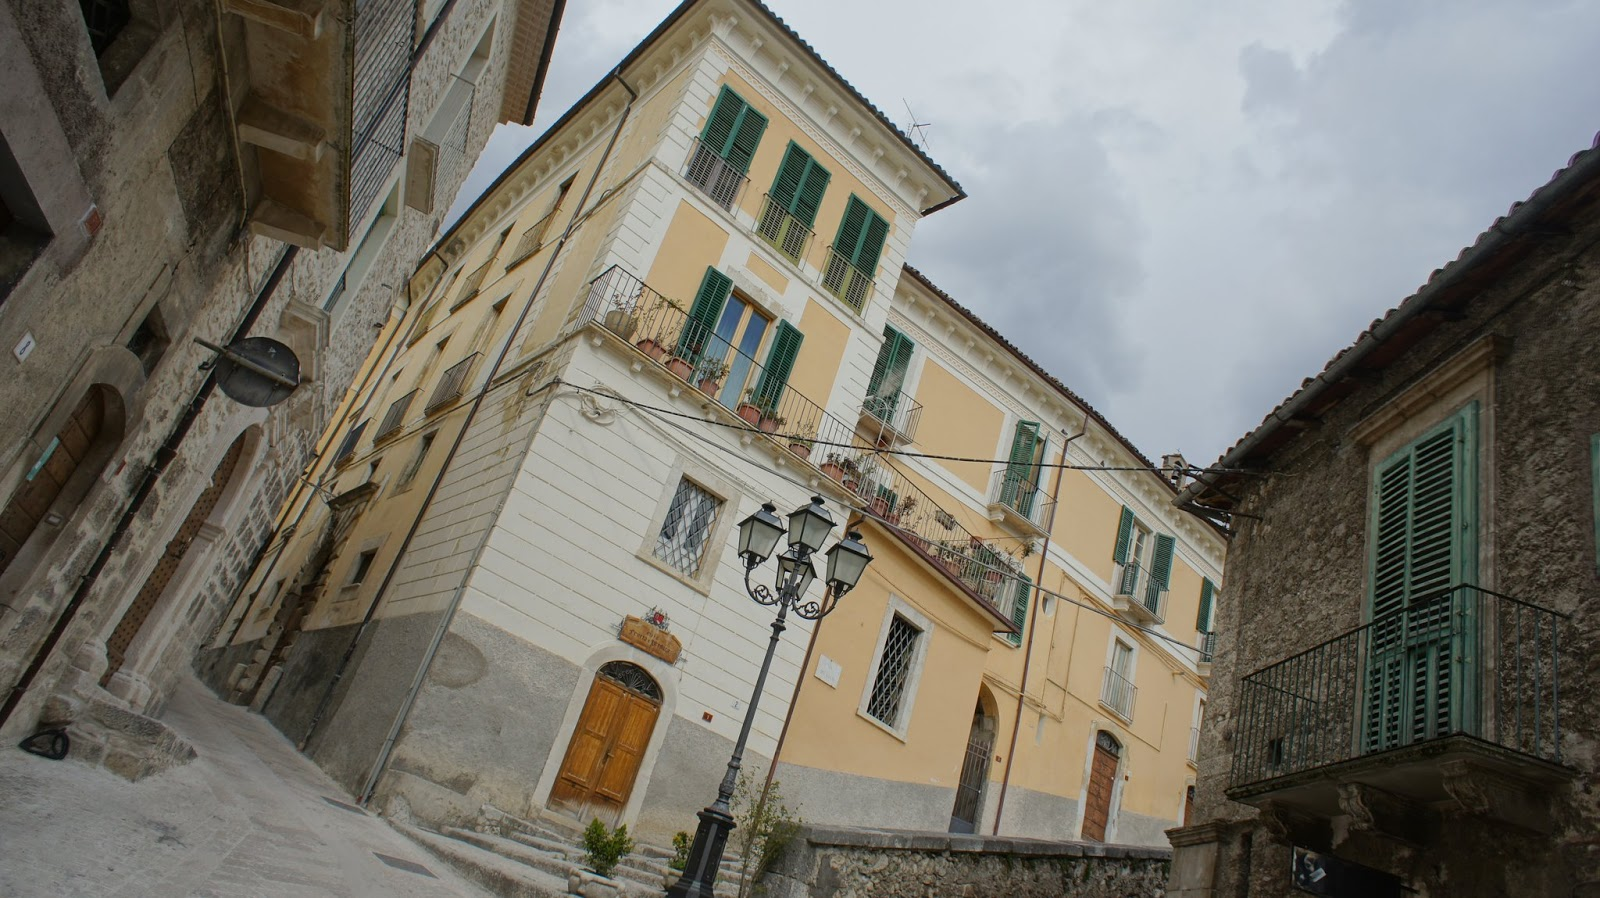 abruzzo villas - photo#14